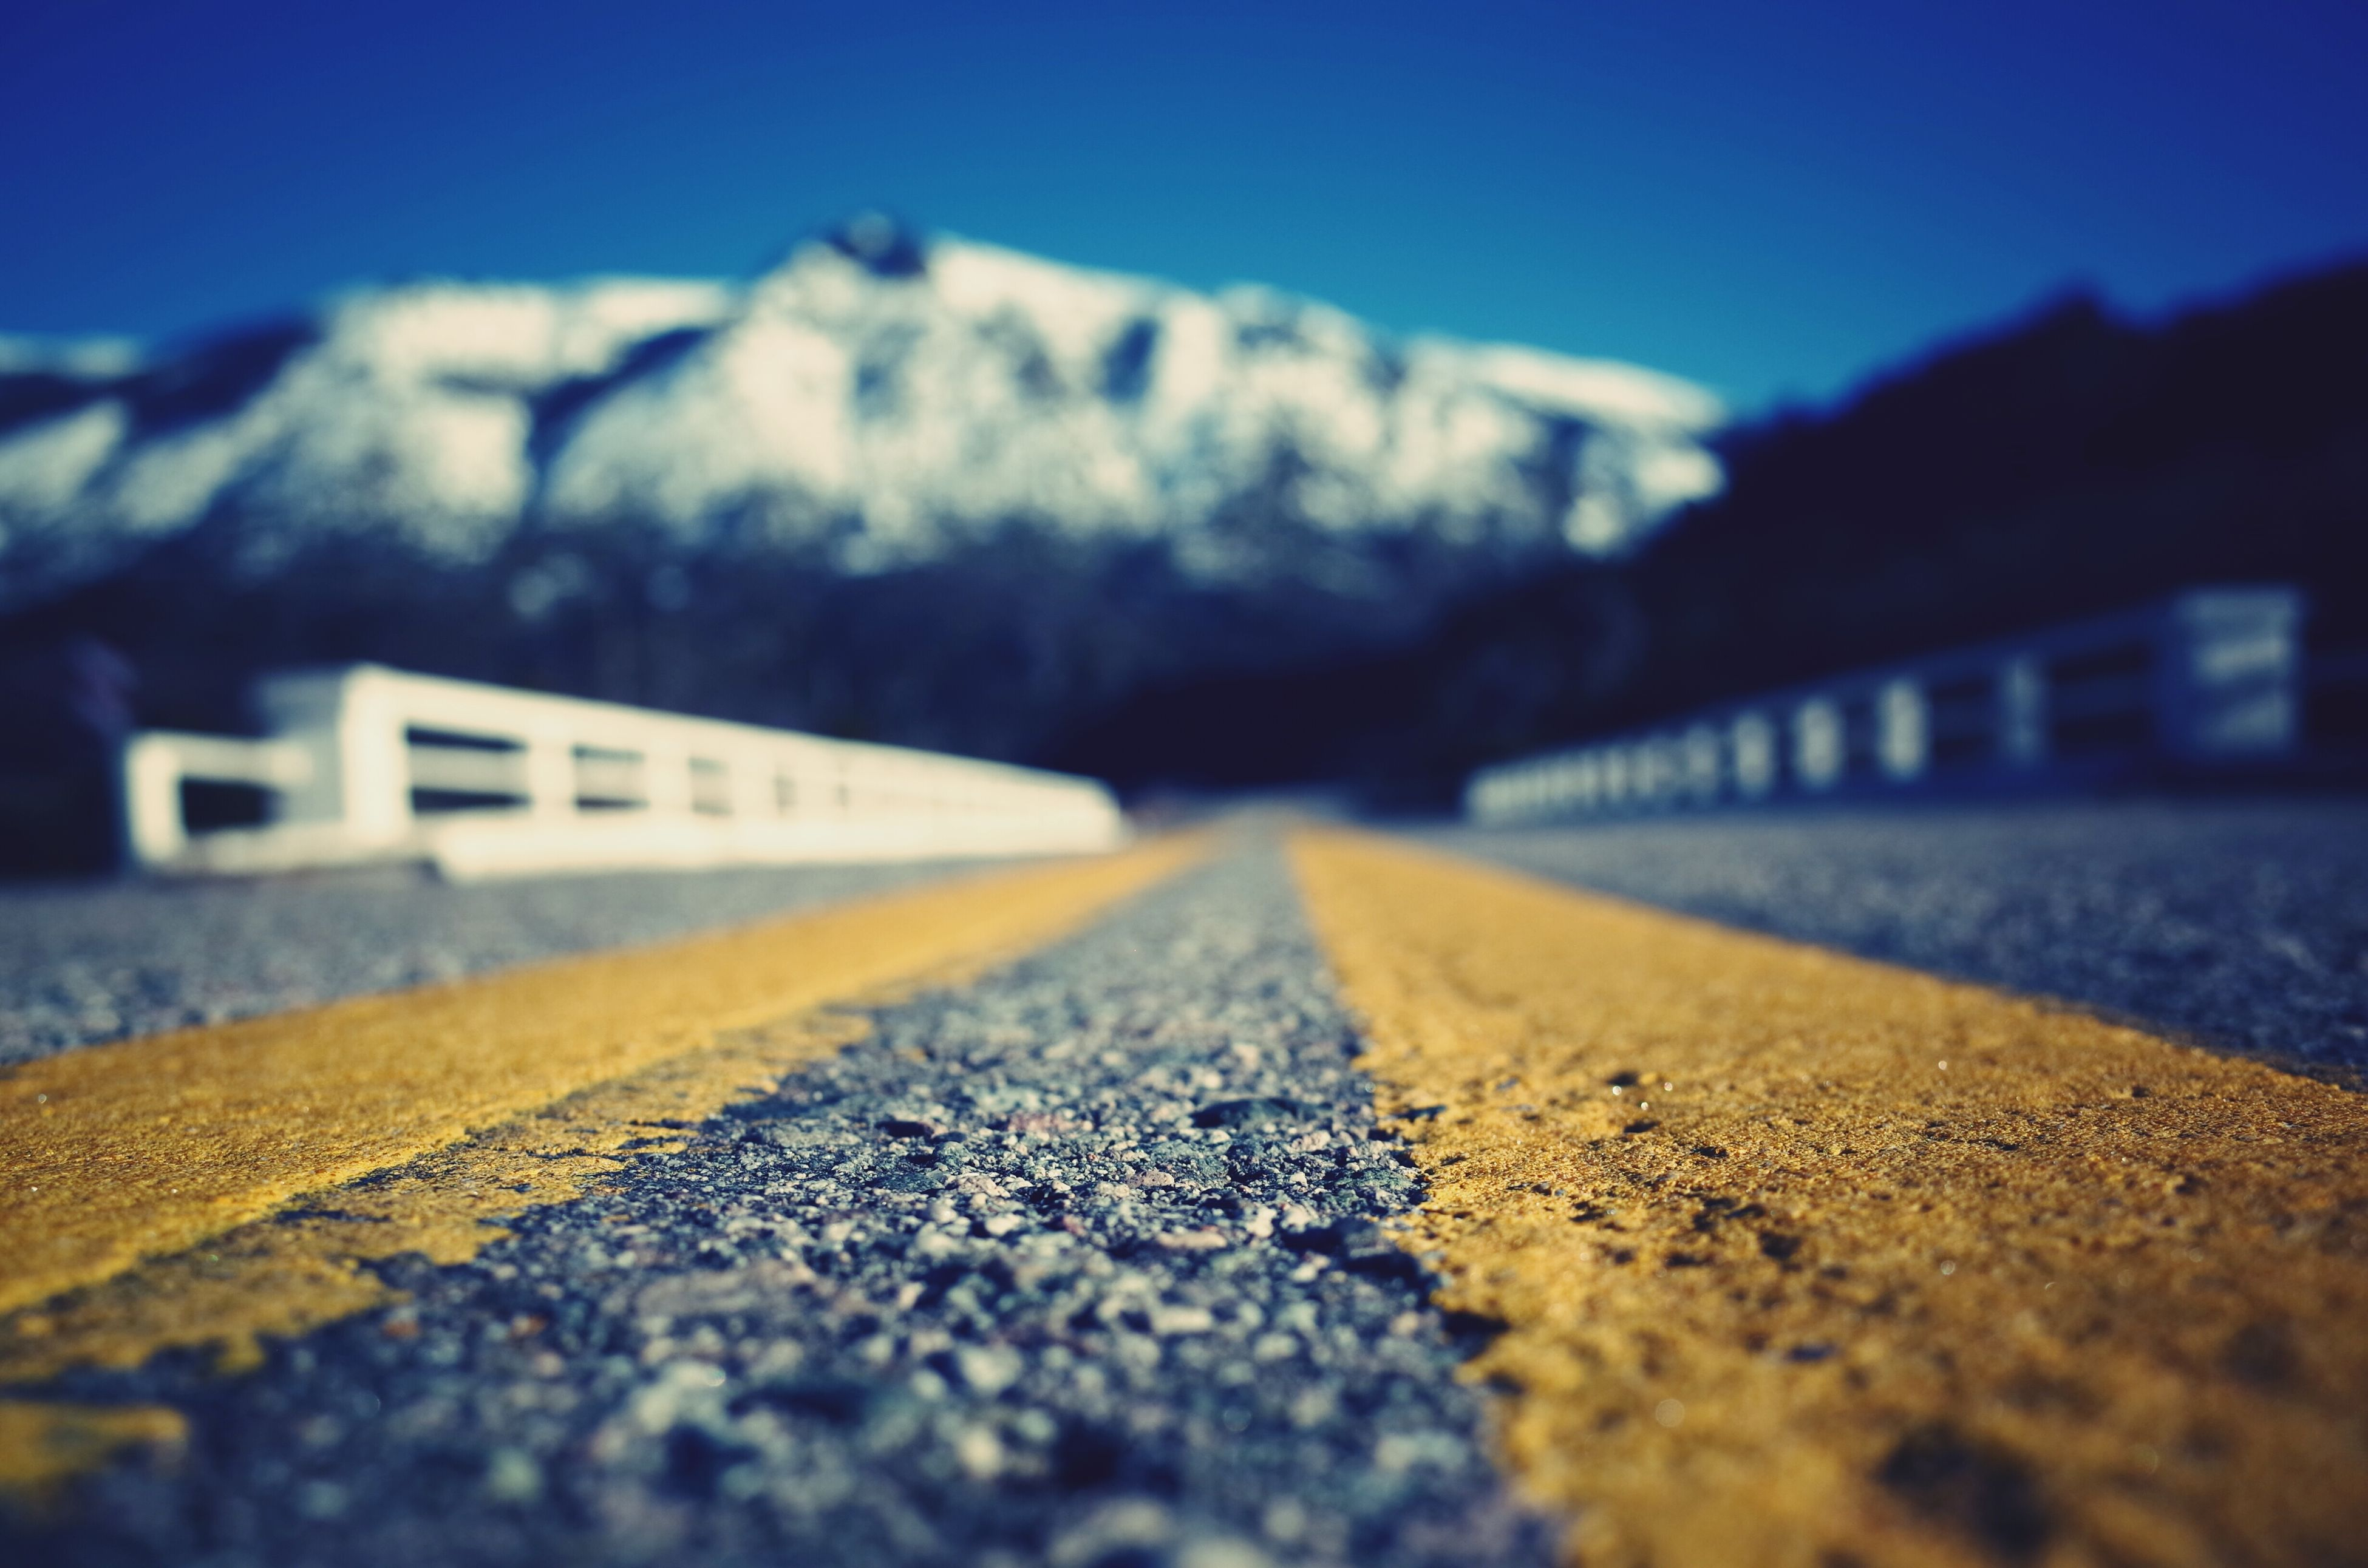 surface level, selective focus, clear sky, the way forward, asphalt, road, sky, diminishing perspective, street, built structure, focus on foreground, outdoors, snow, day, transportation, railroad track, no people, winter, blue, mountain